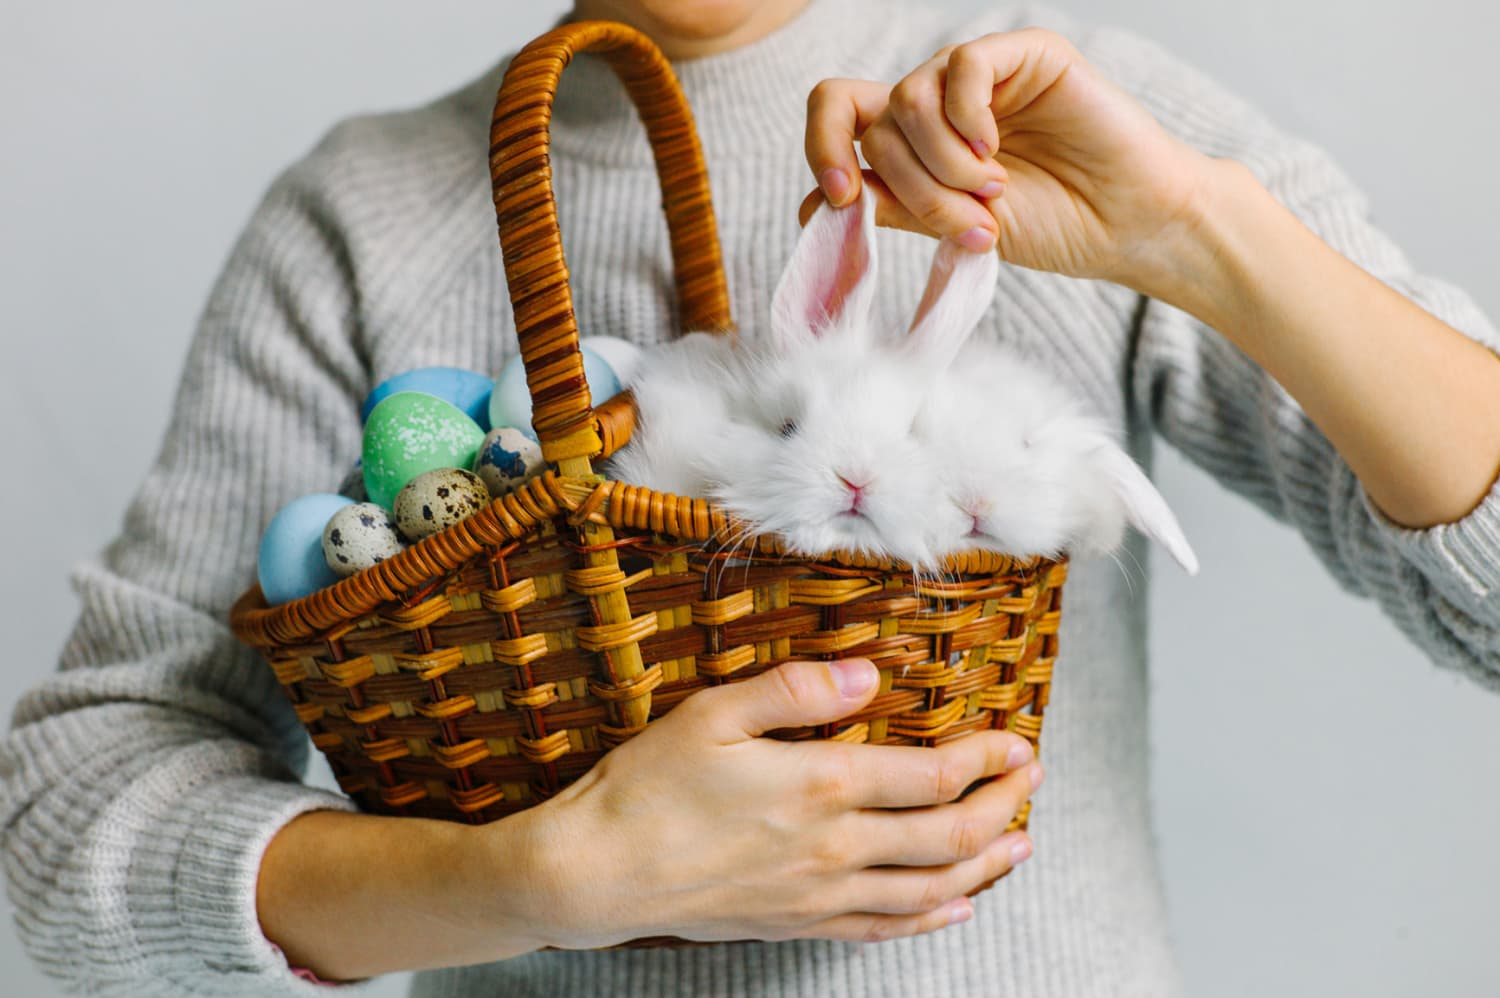 5 Tips for Building an Easter Basket for Grown-Ups